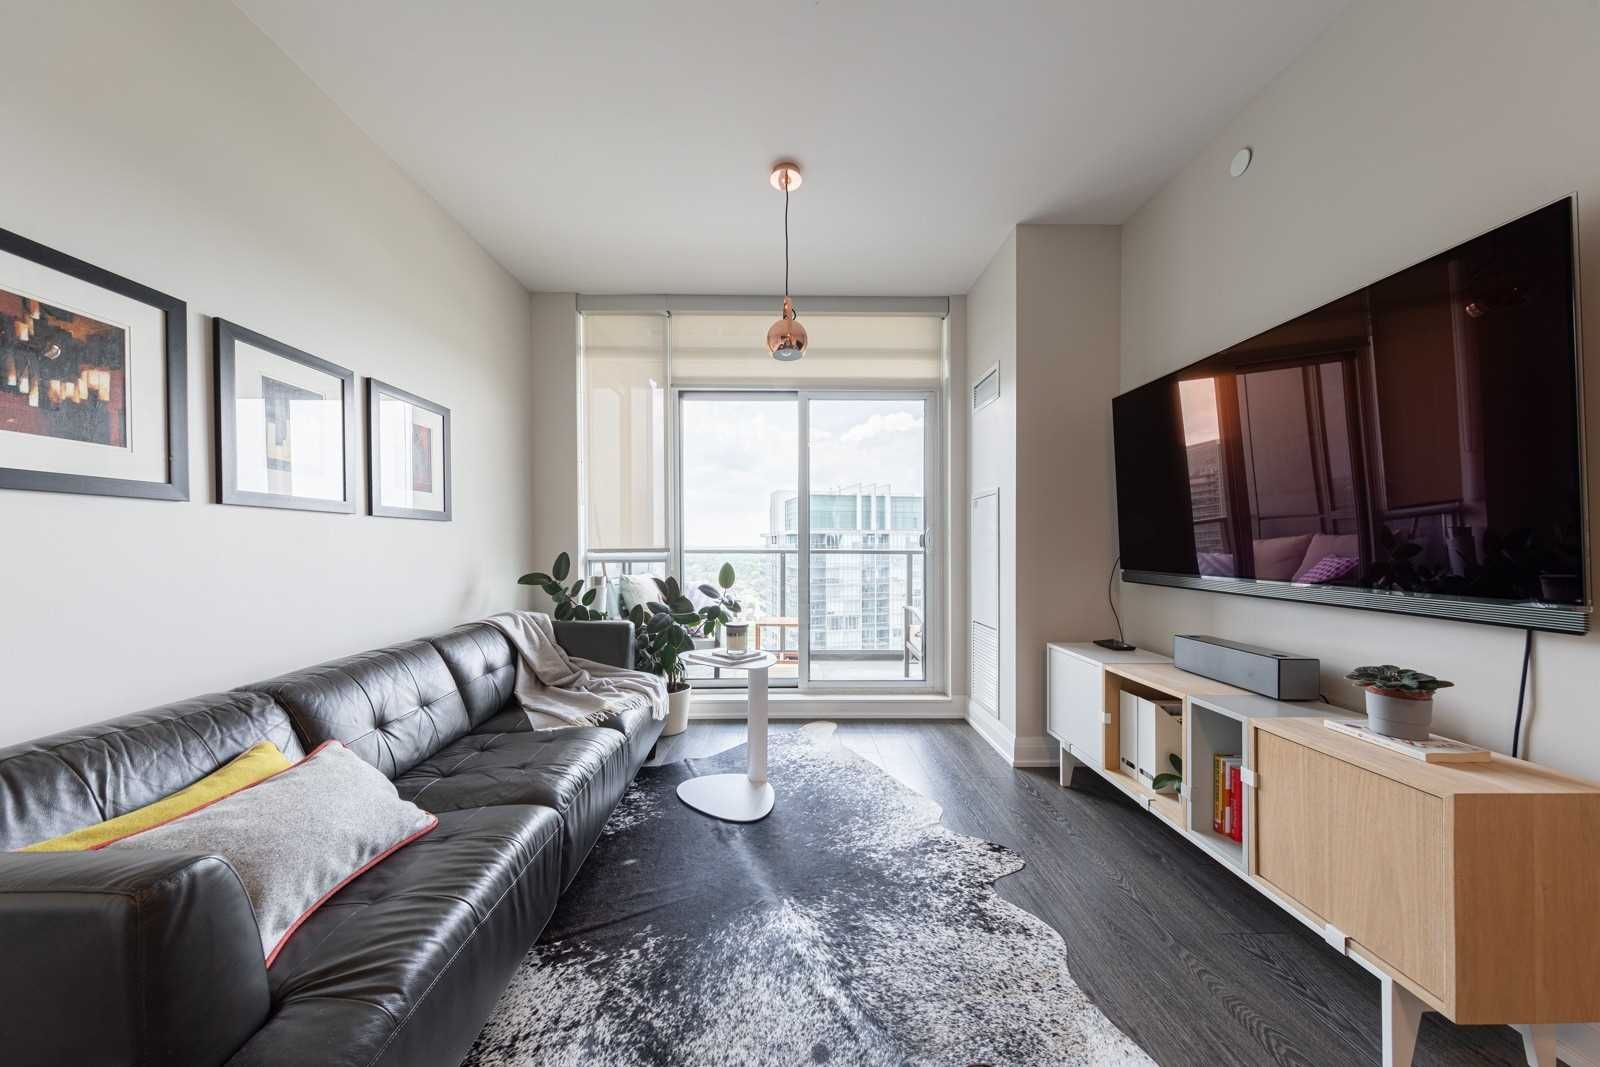 36 Park Lawn Rd, unit 2707 for sale in Toronto - image #1